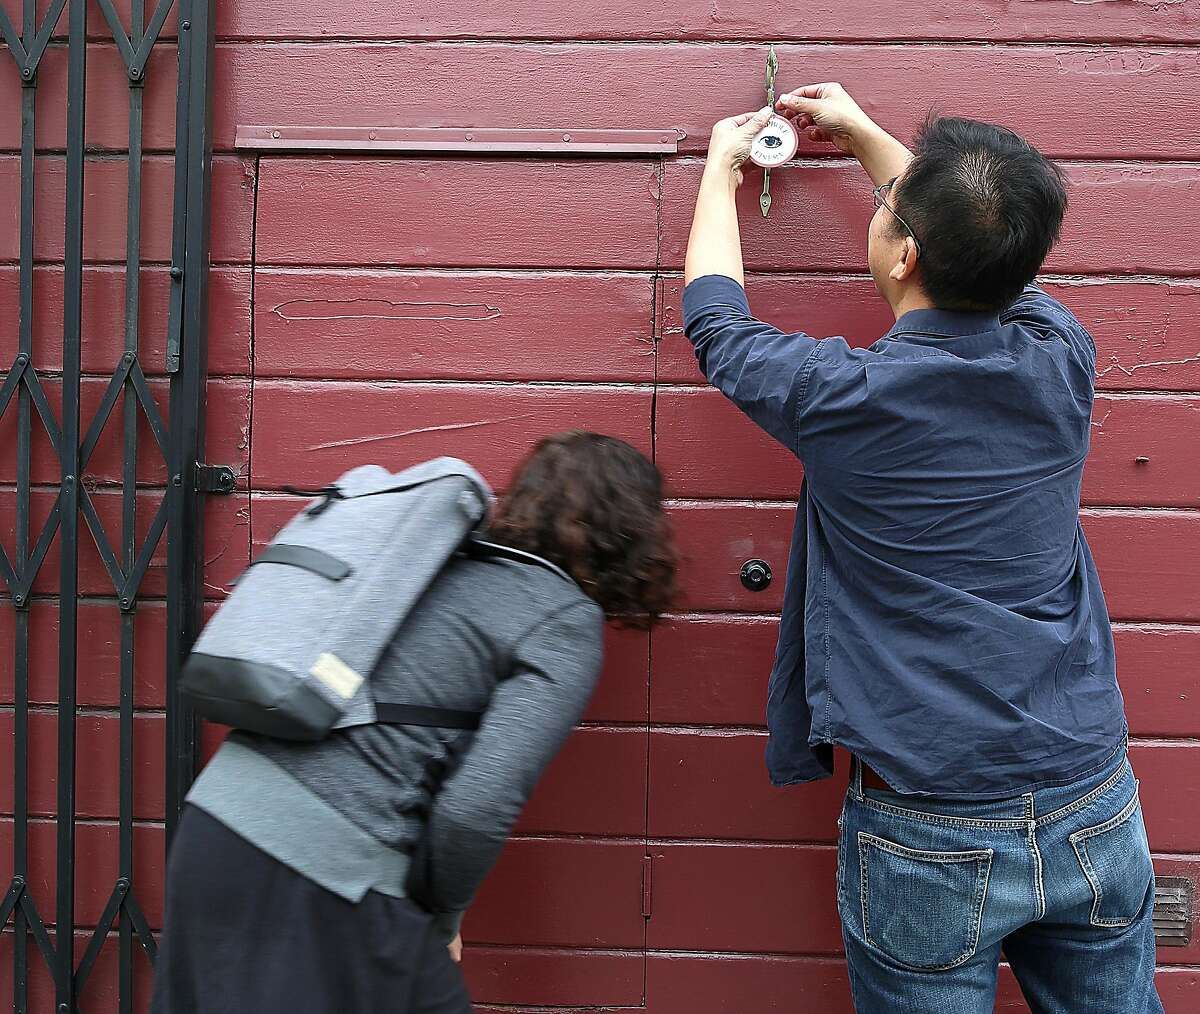 Curator Sarah Klein (left) and David Kwan (right) work on changing the films showing at Peephole Cinema, a public art installation on Orange Alley in San Francisco, California, on wednesday, march 30, 2016.